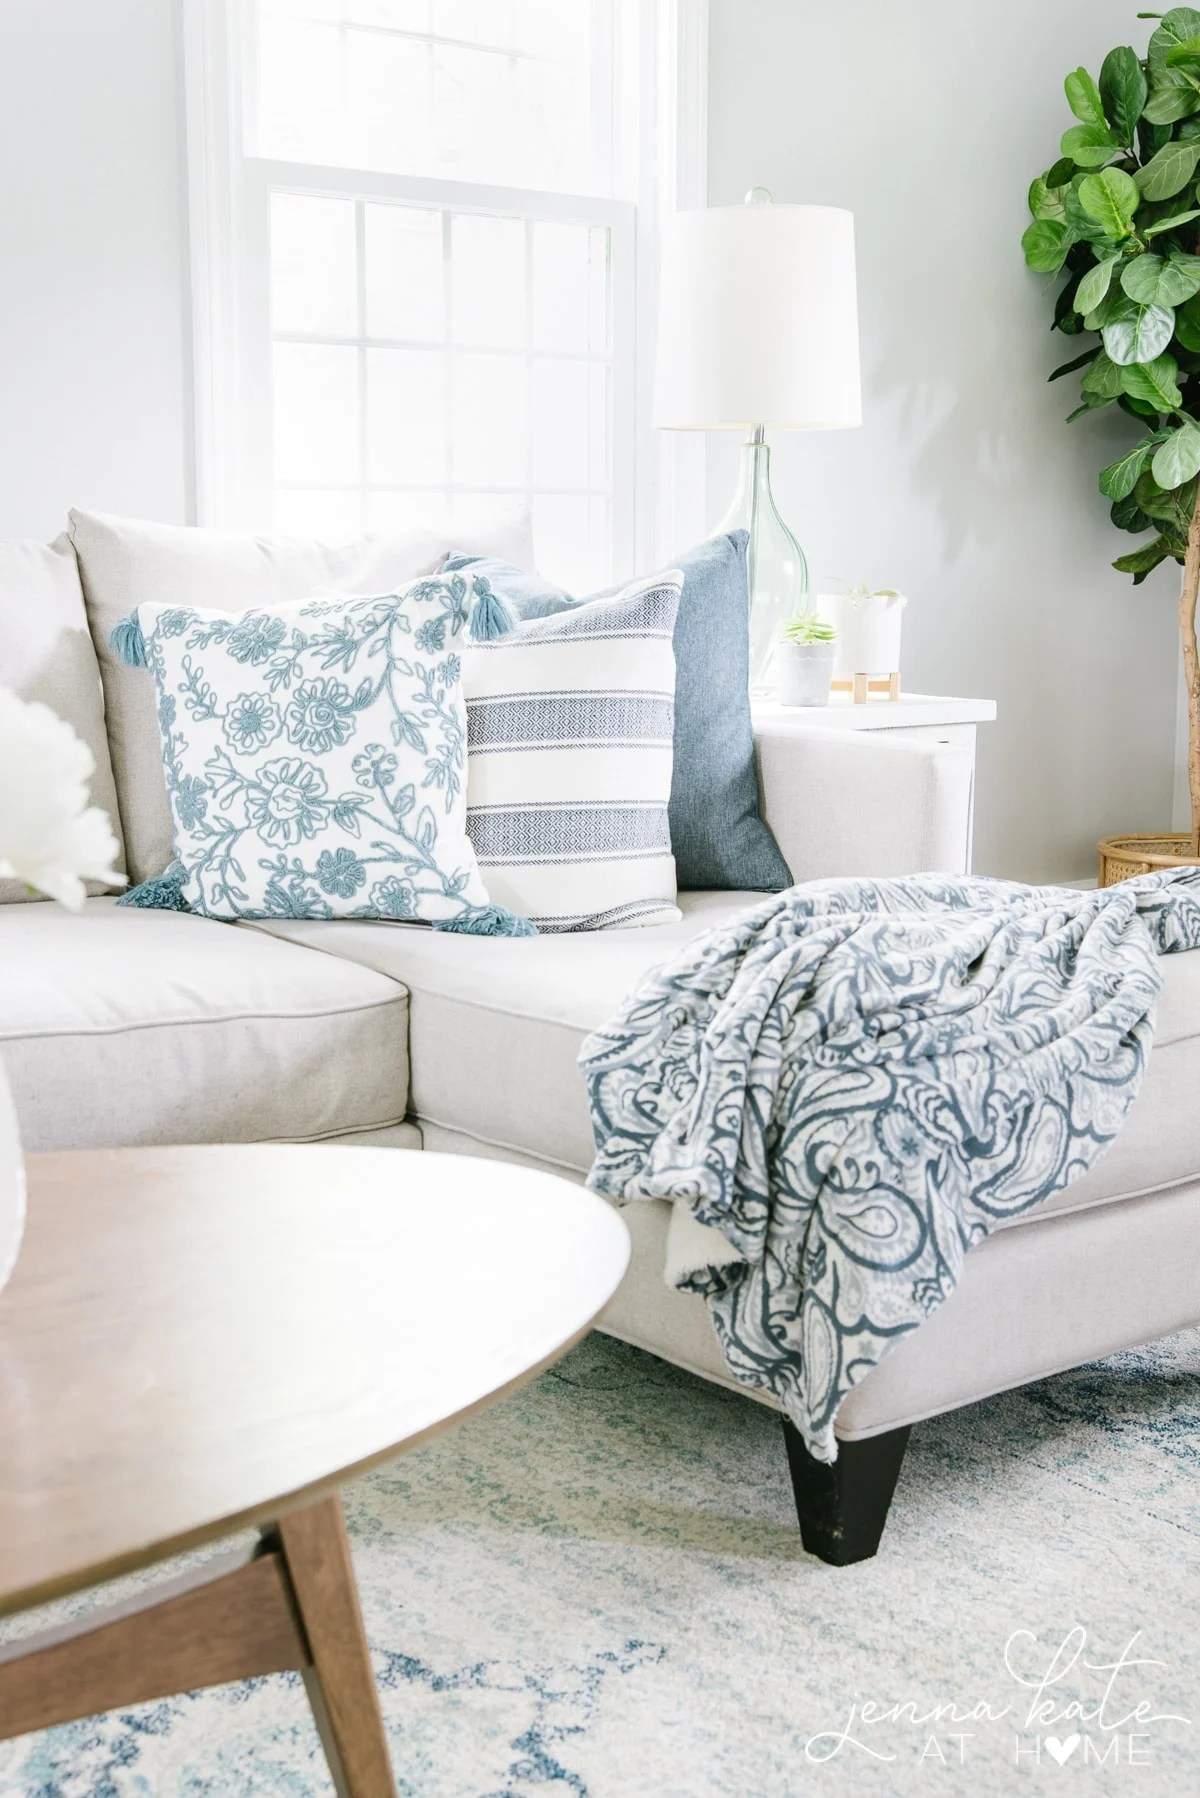 Decorating the living room couch with blue throw pillows and a matching blanket